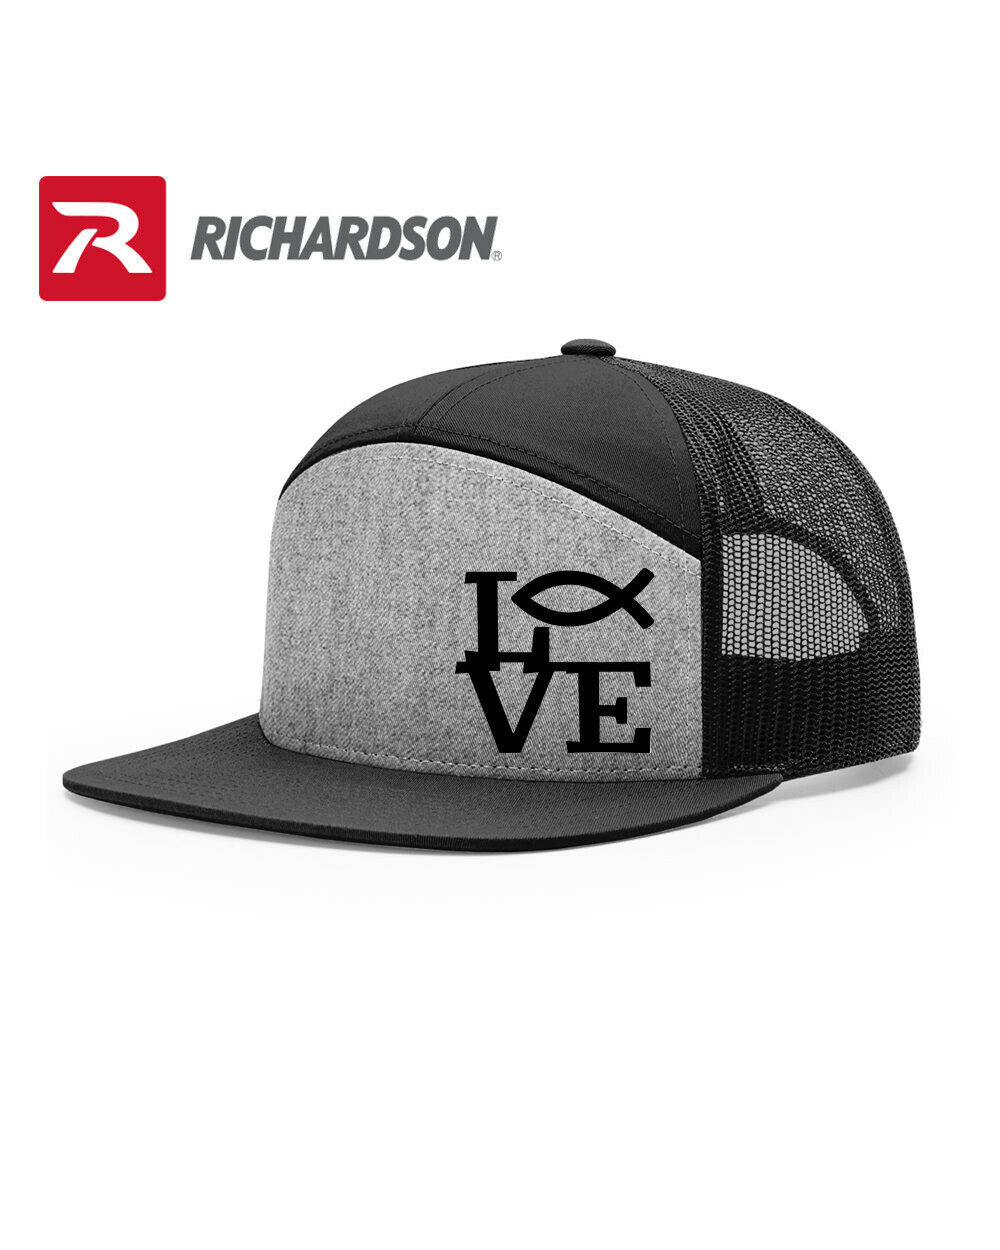 Primary image for I LOVE GOD RELIGION LOVER RICHARDSON FLAT BILL SNAPBACK HAT SHIPPING in BOX*